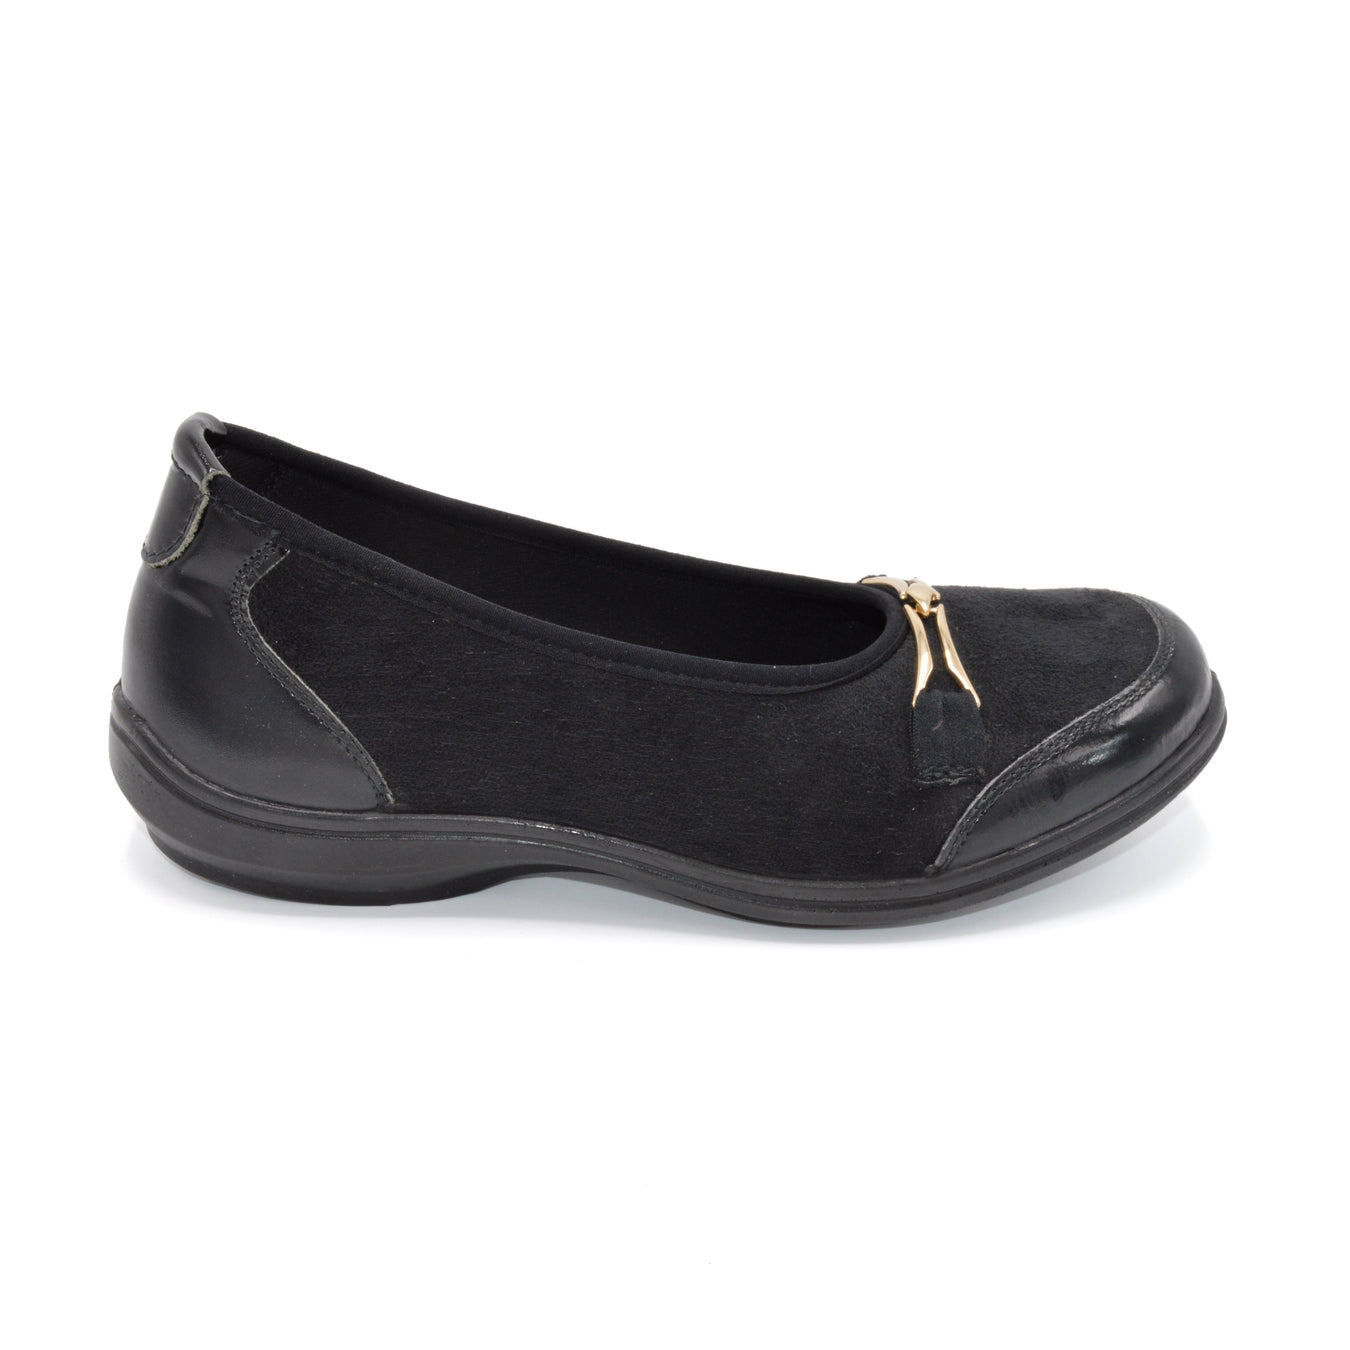 Ladies Wide Fitting Loafers and Ballet Pumps. DB Nailsea Extra Wide Fit